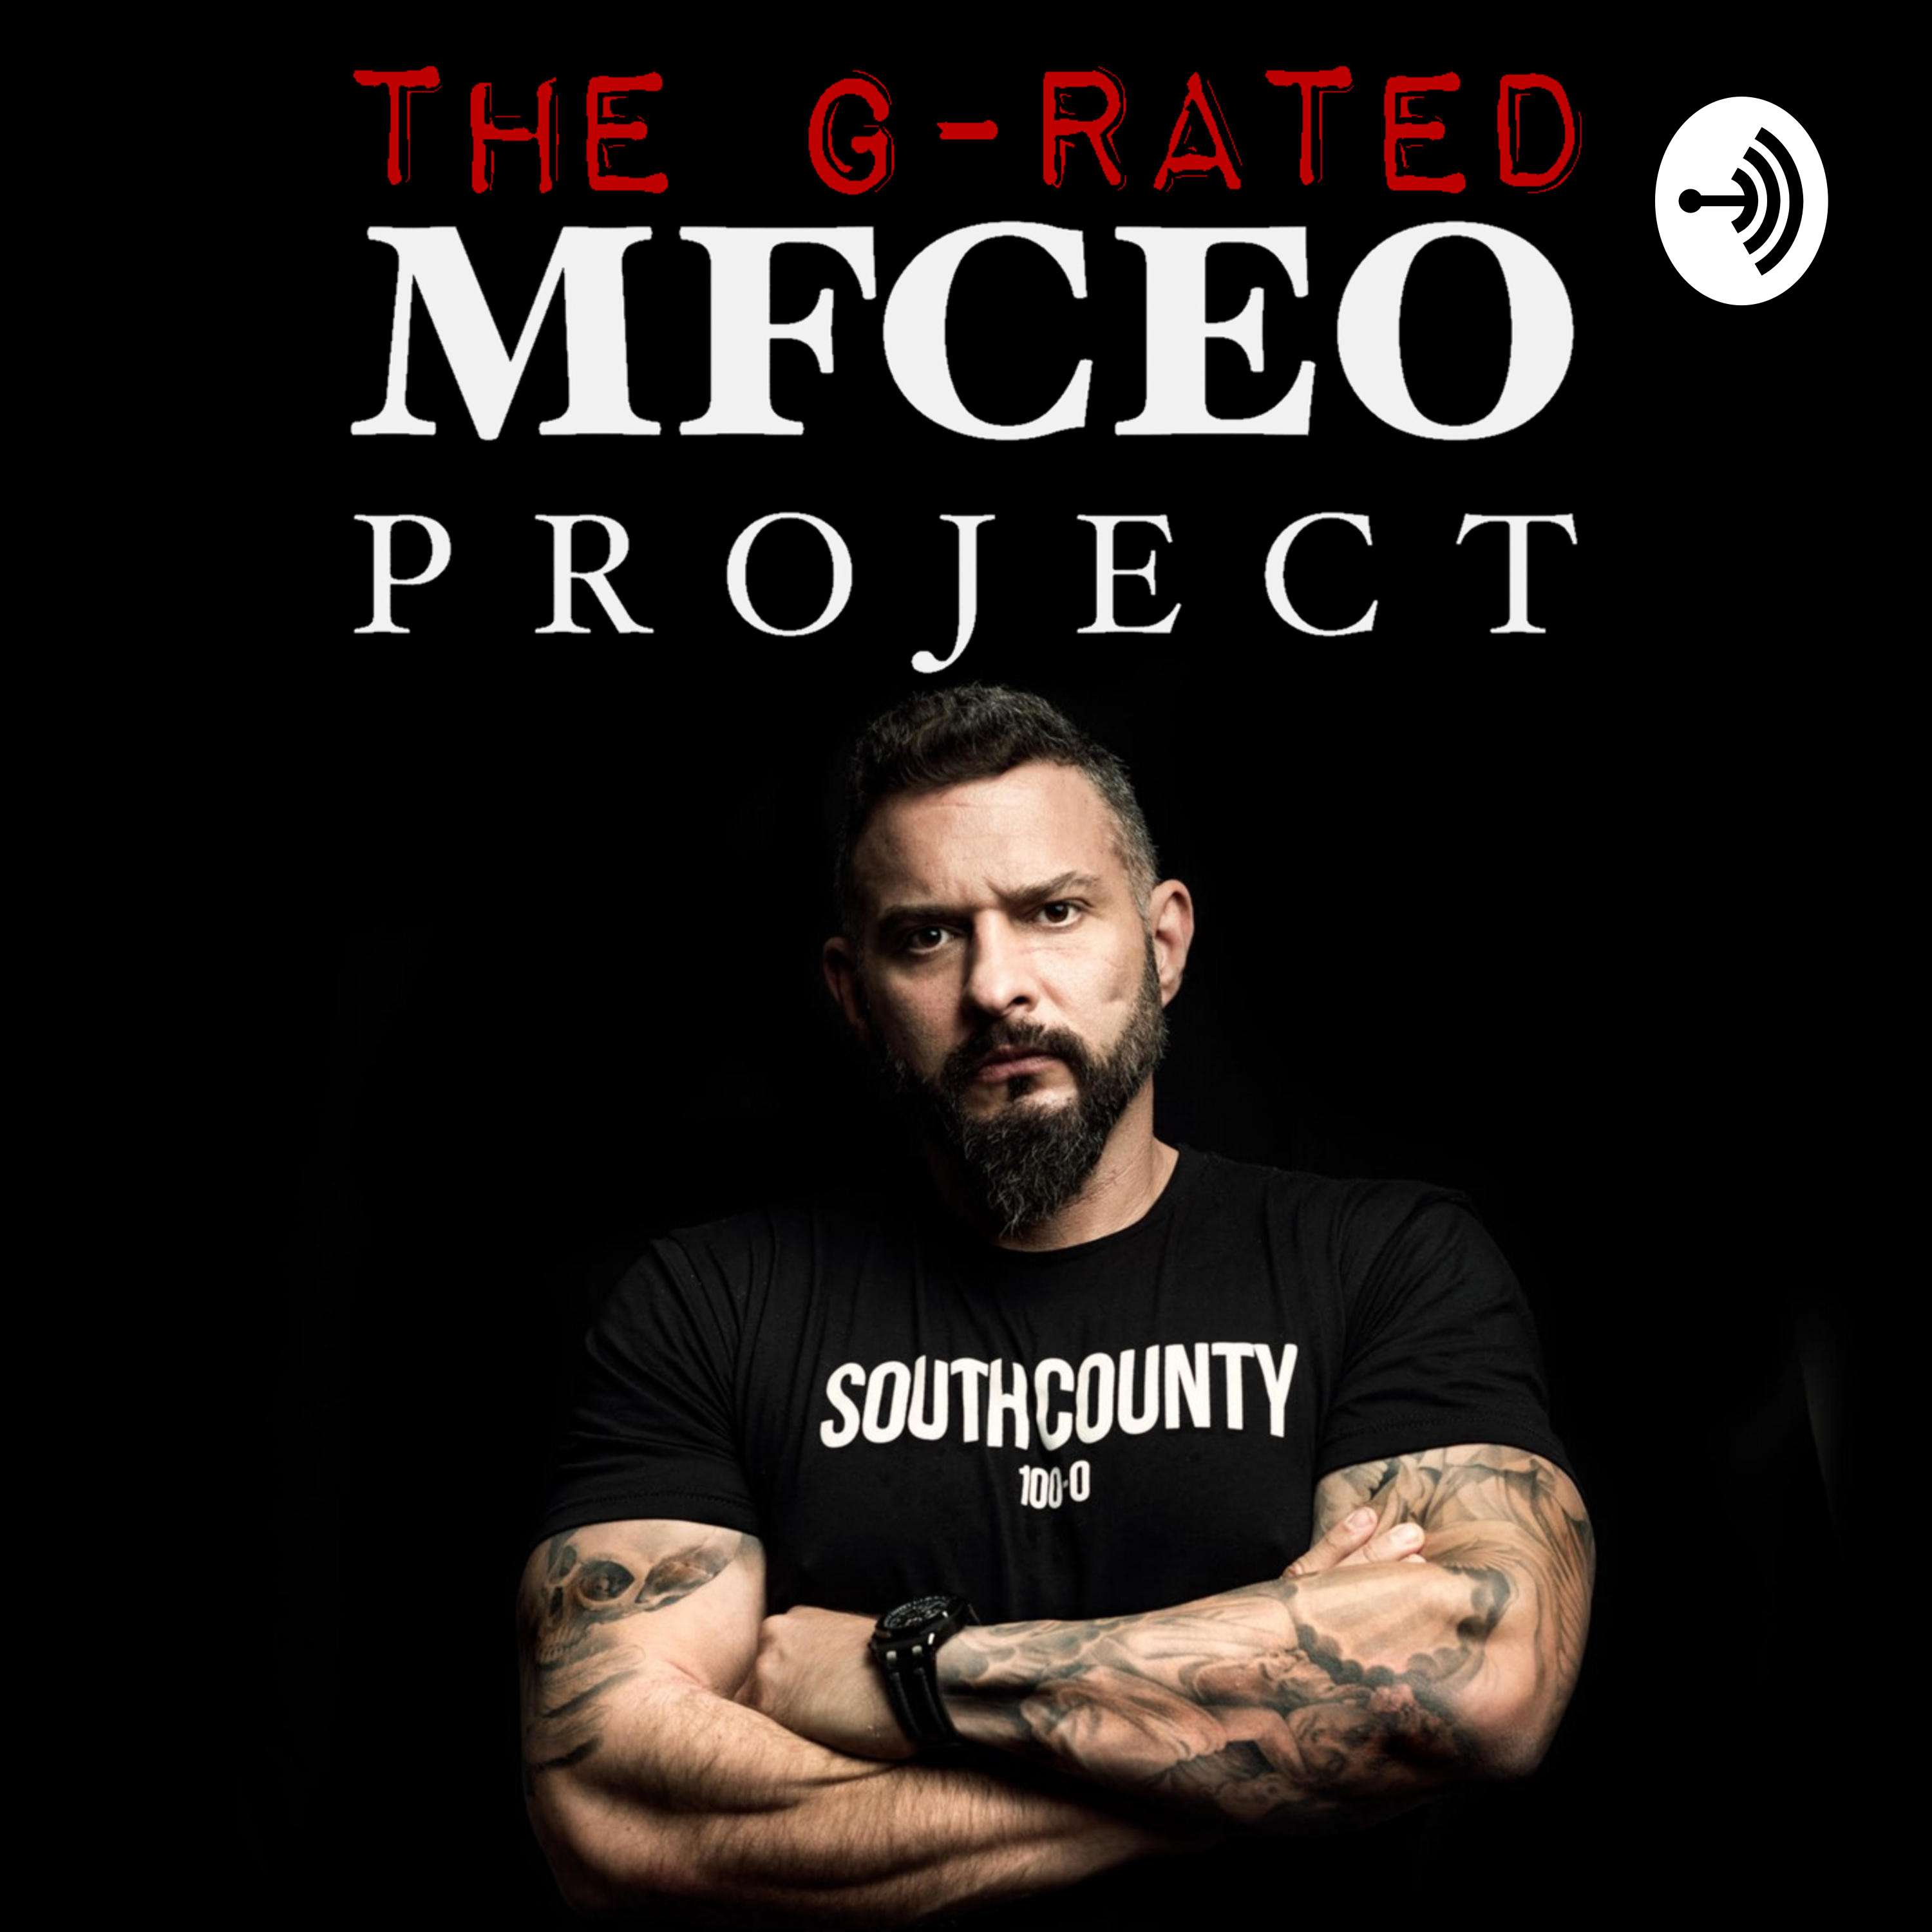 The MFCEO Project [G-RATED]